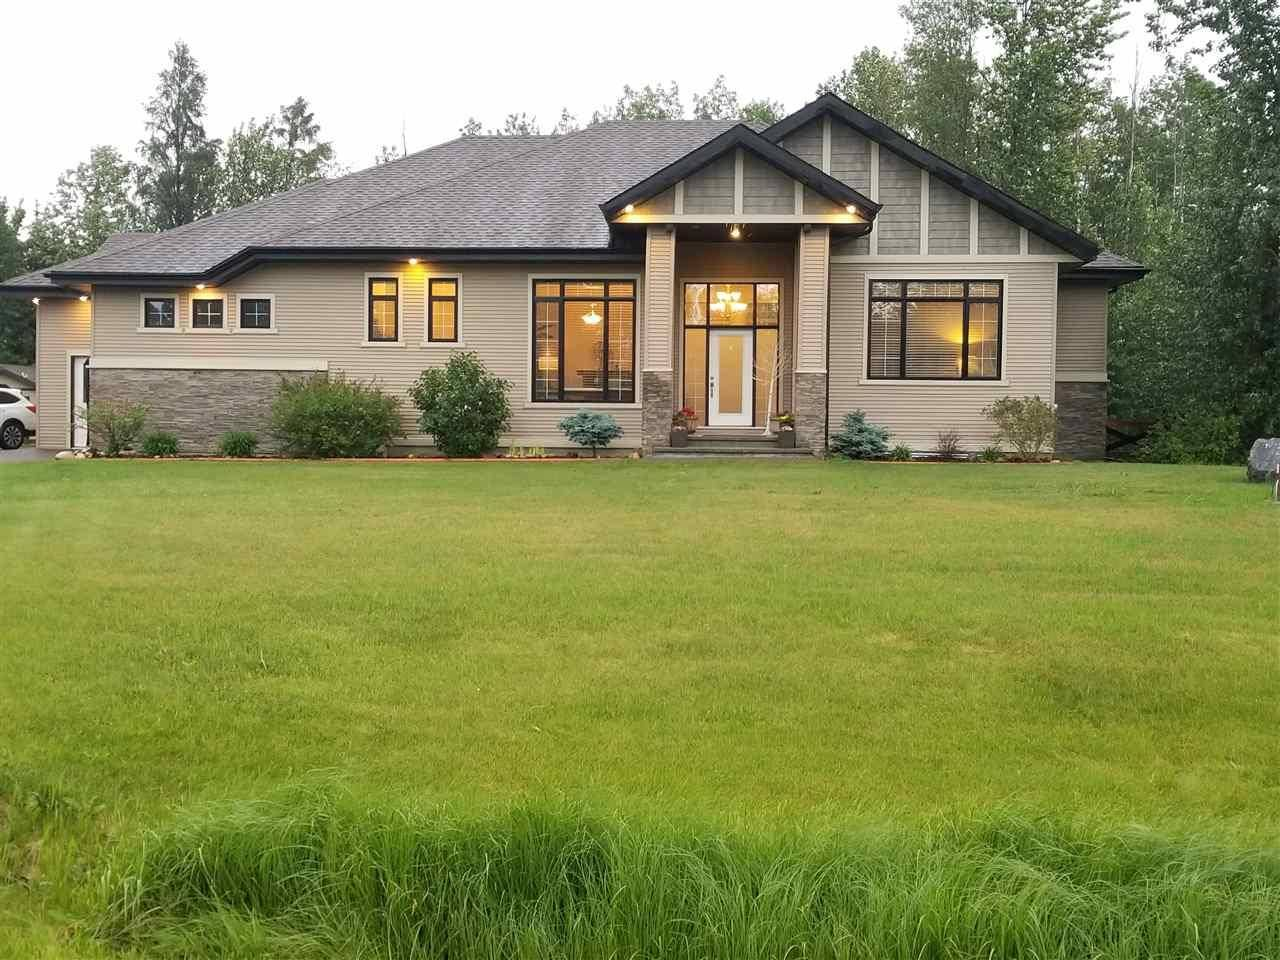 House for sale at 53216 Rge Rd Unit 3 Rural Parkland County Alberta - MLS: E4193423